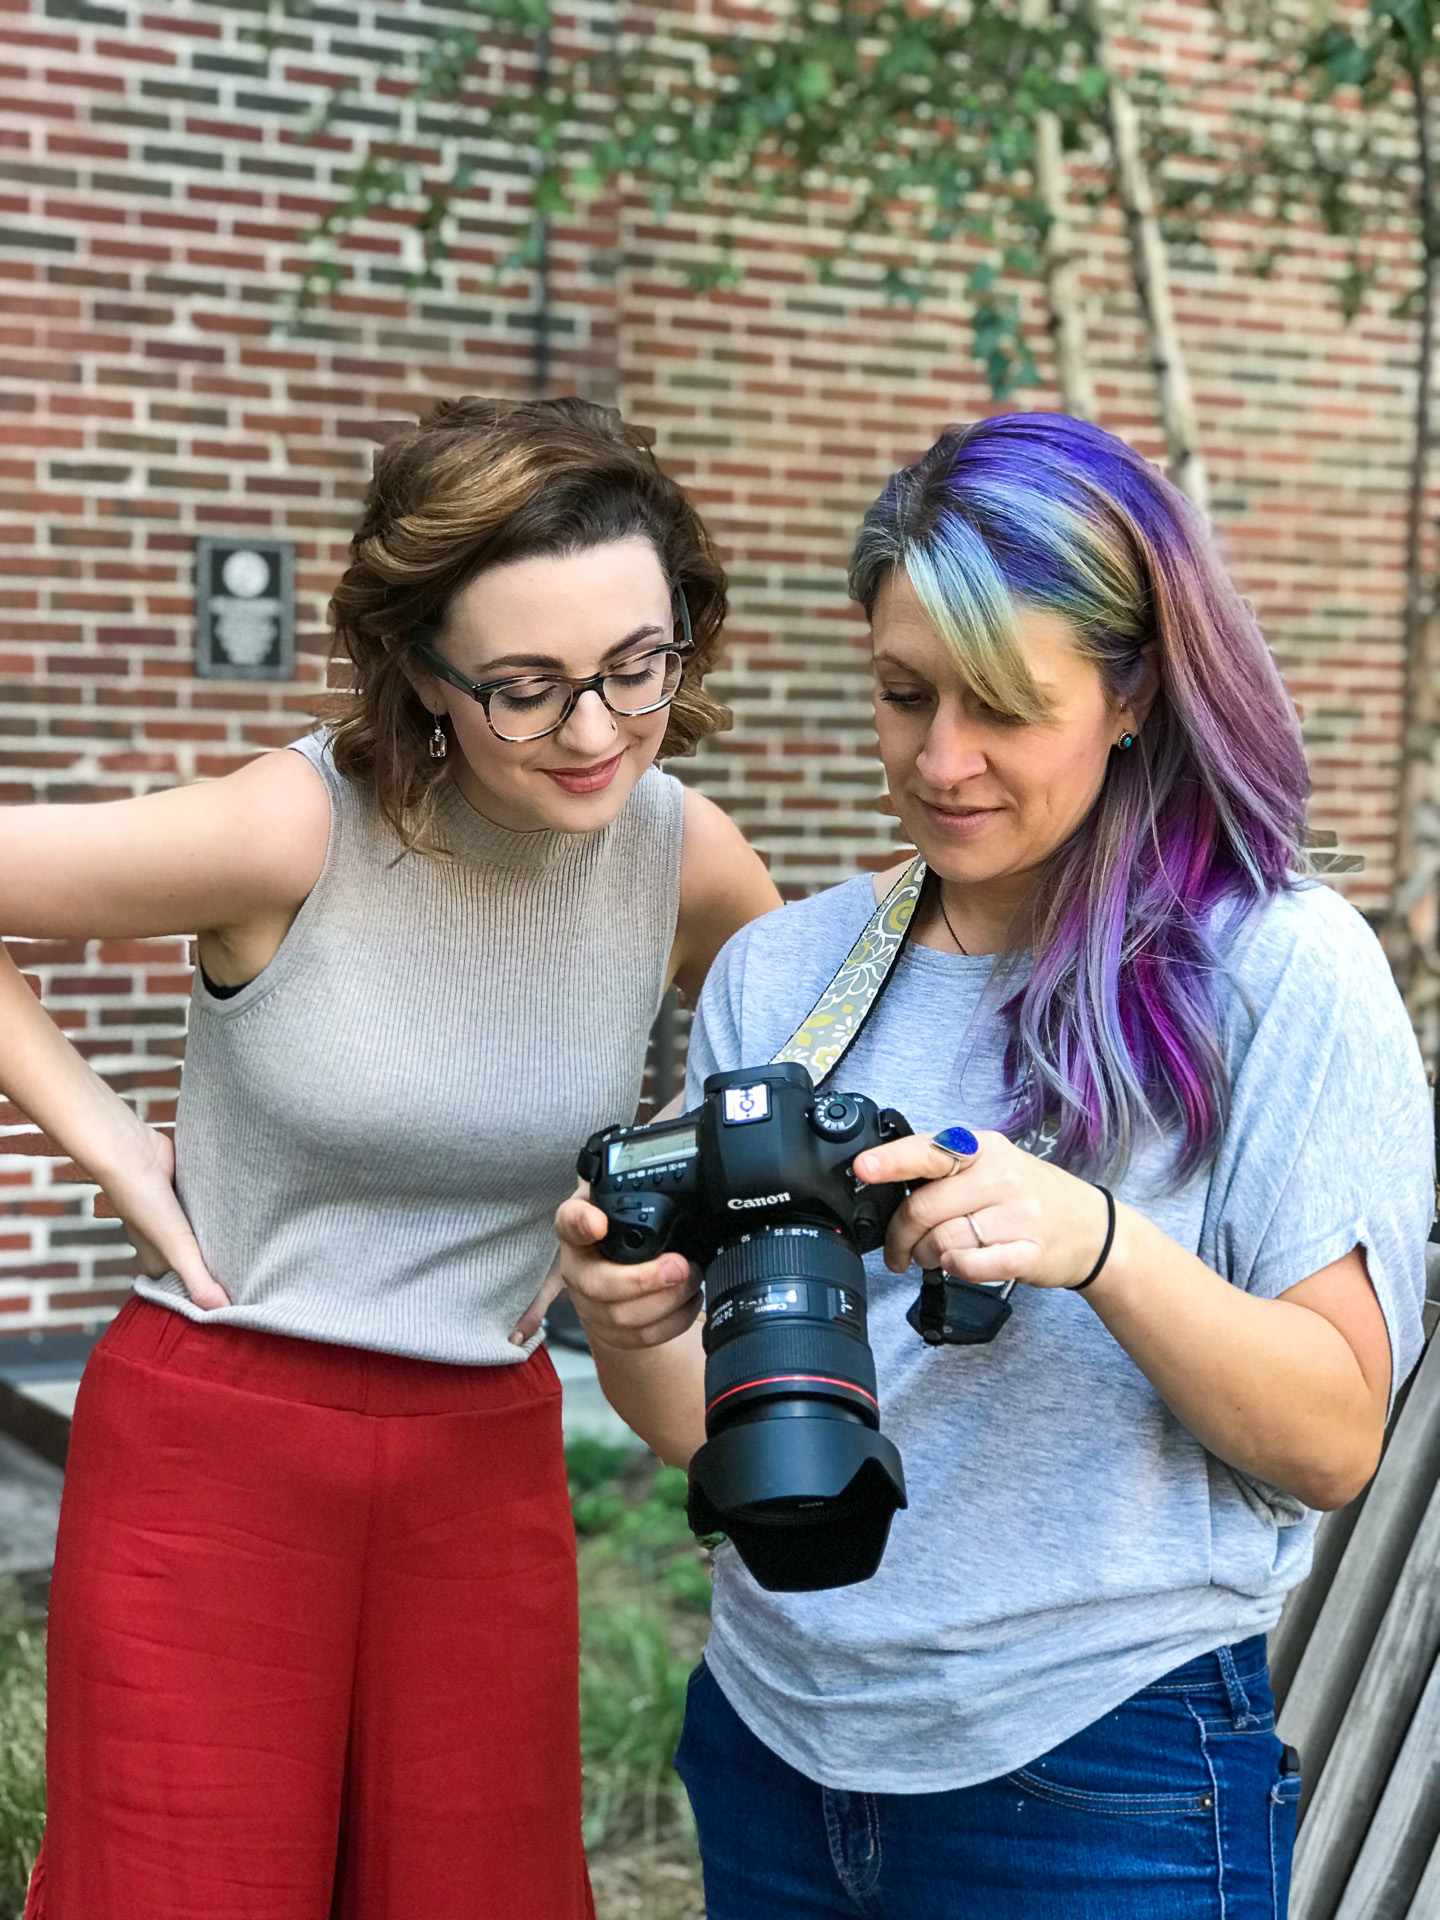 Georgia Based photographer Starr Petronella photographs teens, tweens, special needs, down syndrome, and high school seniors. She also takes pictures of dance, gymnastics, sports and extreme hobbies.